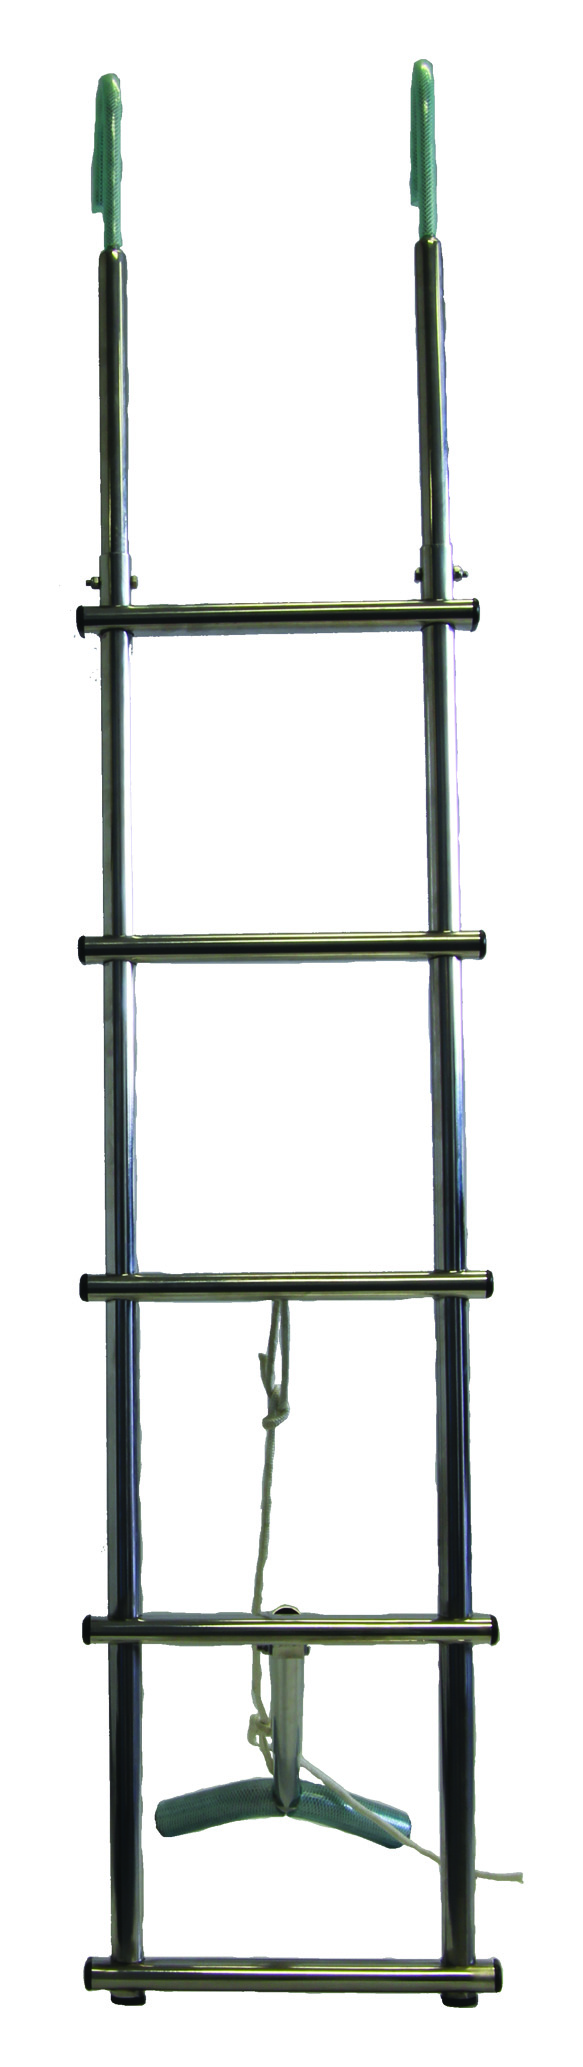 Talamex Steel Ladder With Hooks 3 Steps